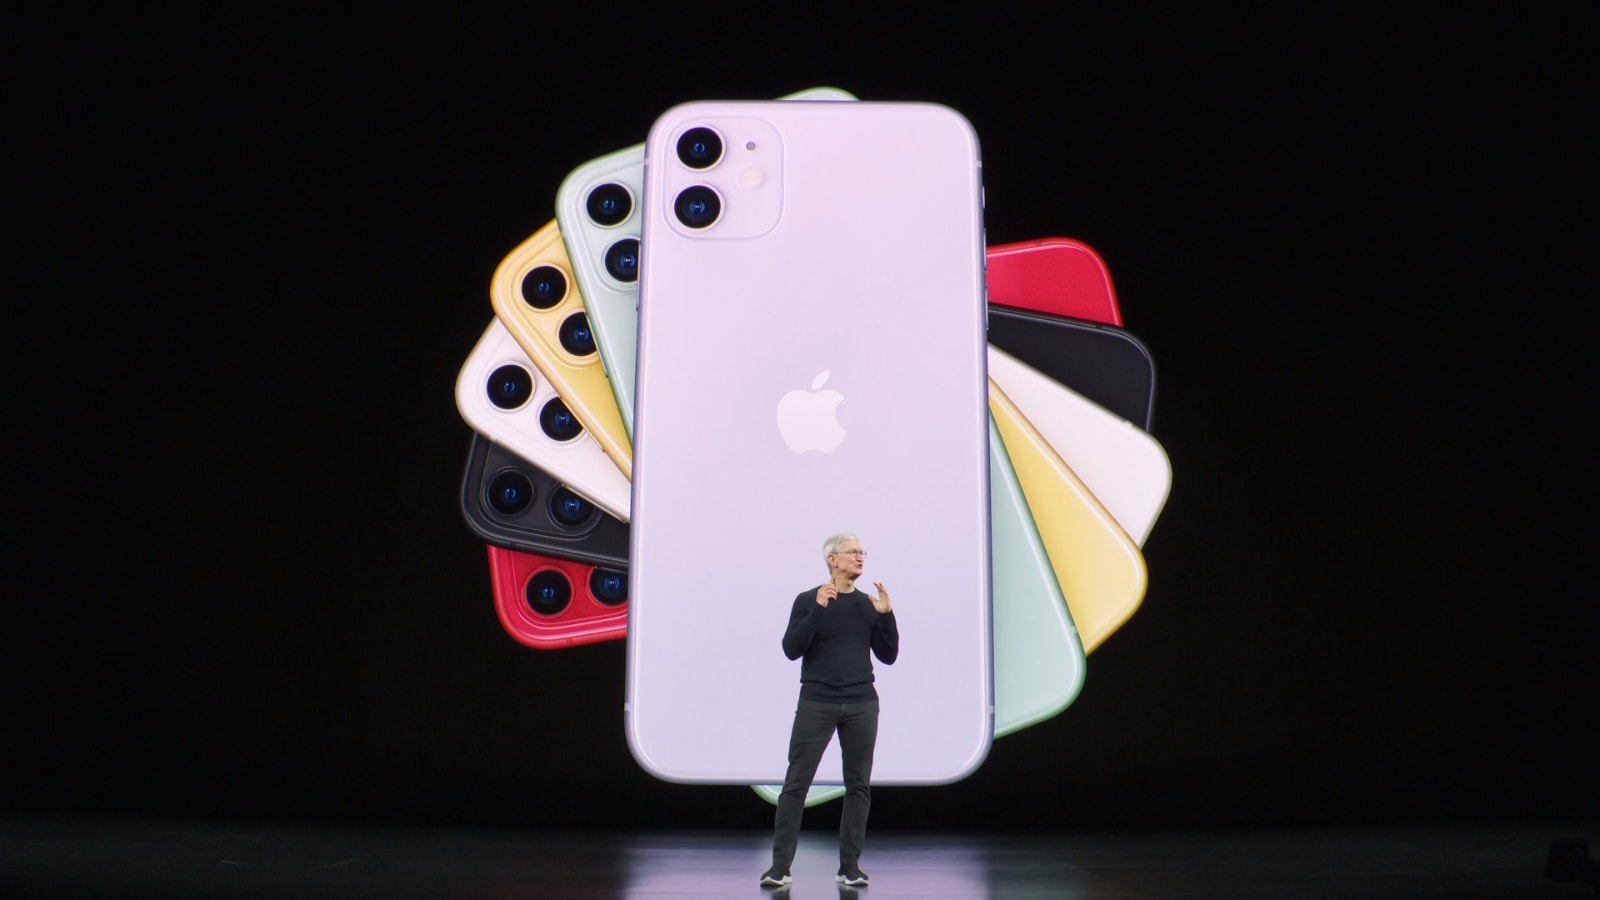 Apple Increases Production Of iPhone 11 By 10%